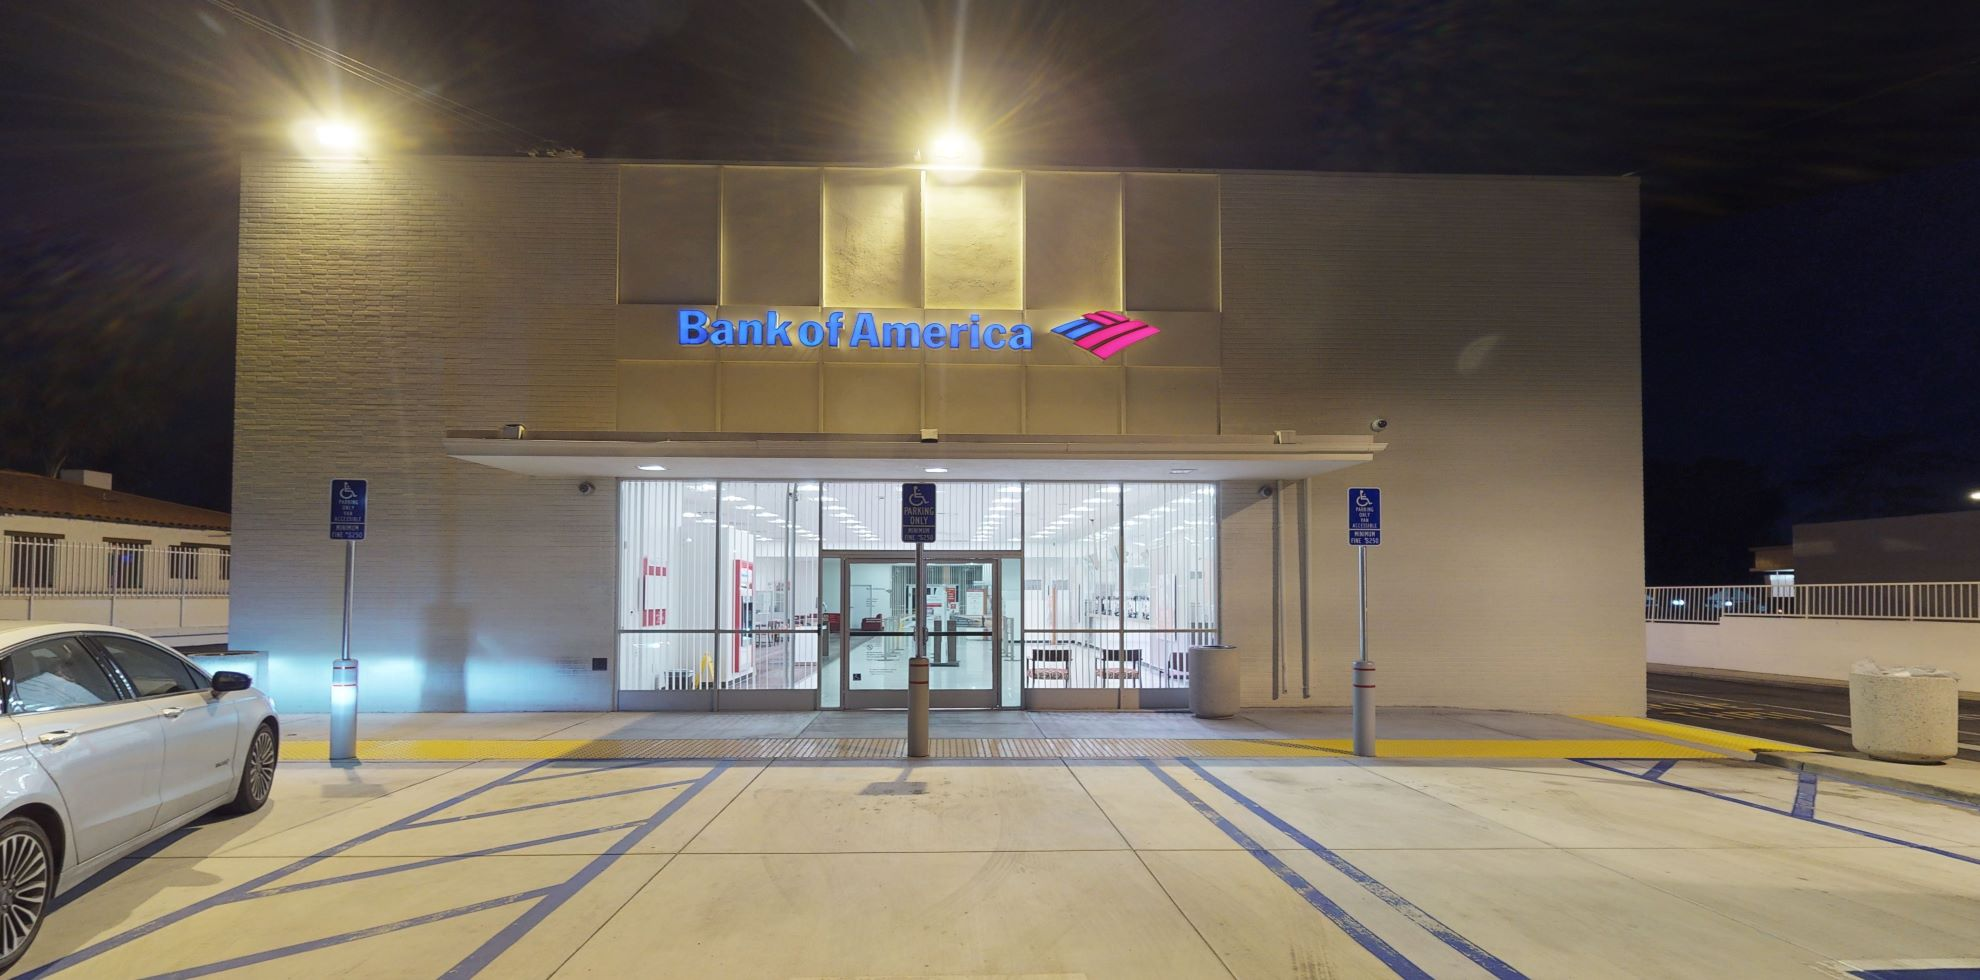 Bank of America financial center with drive-thru ATM | 735 N Euclid Ave, Ontario, CA 91762